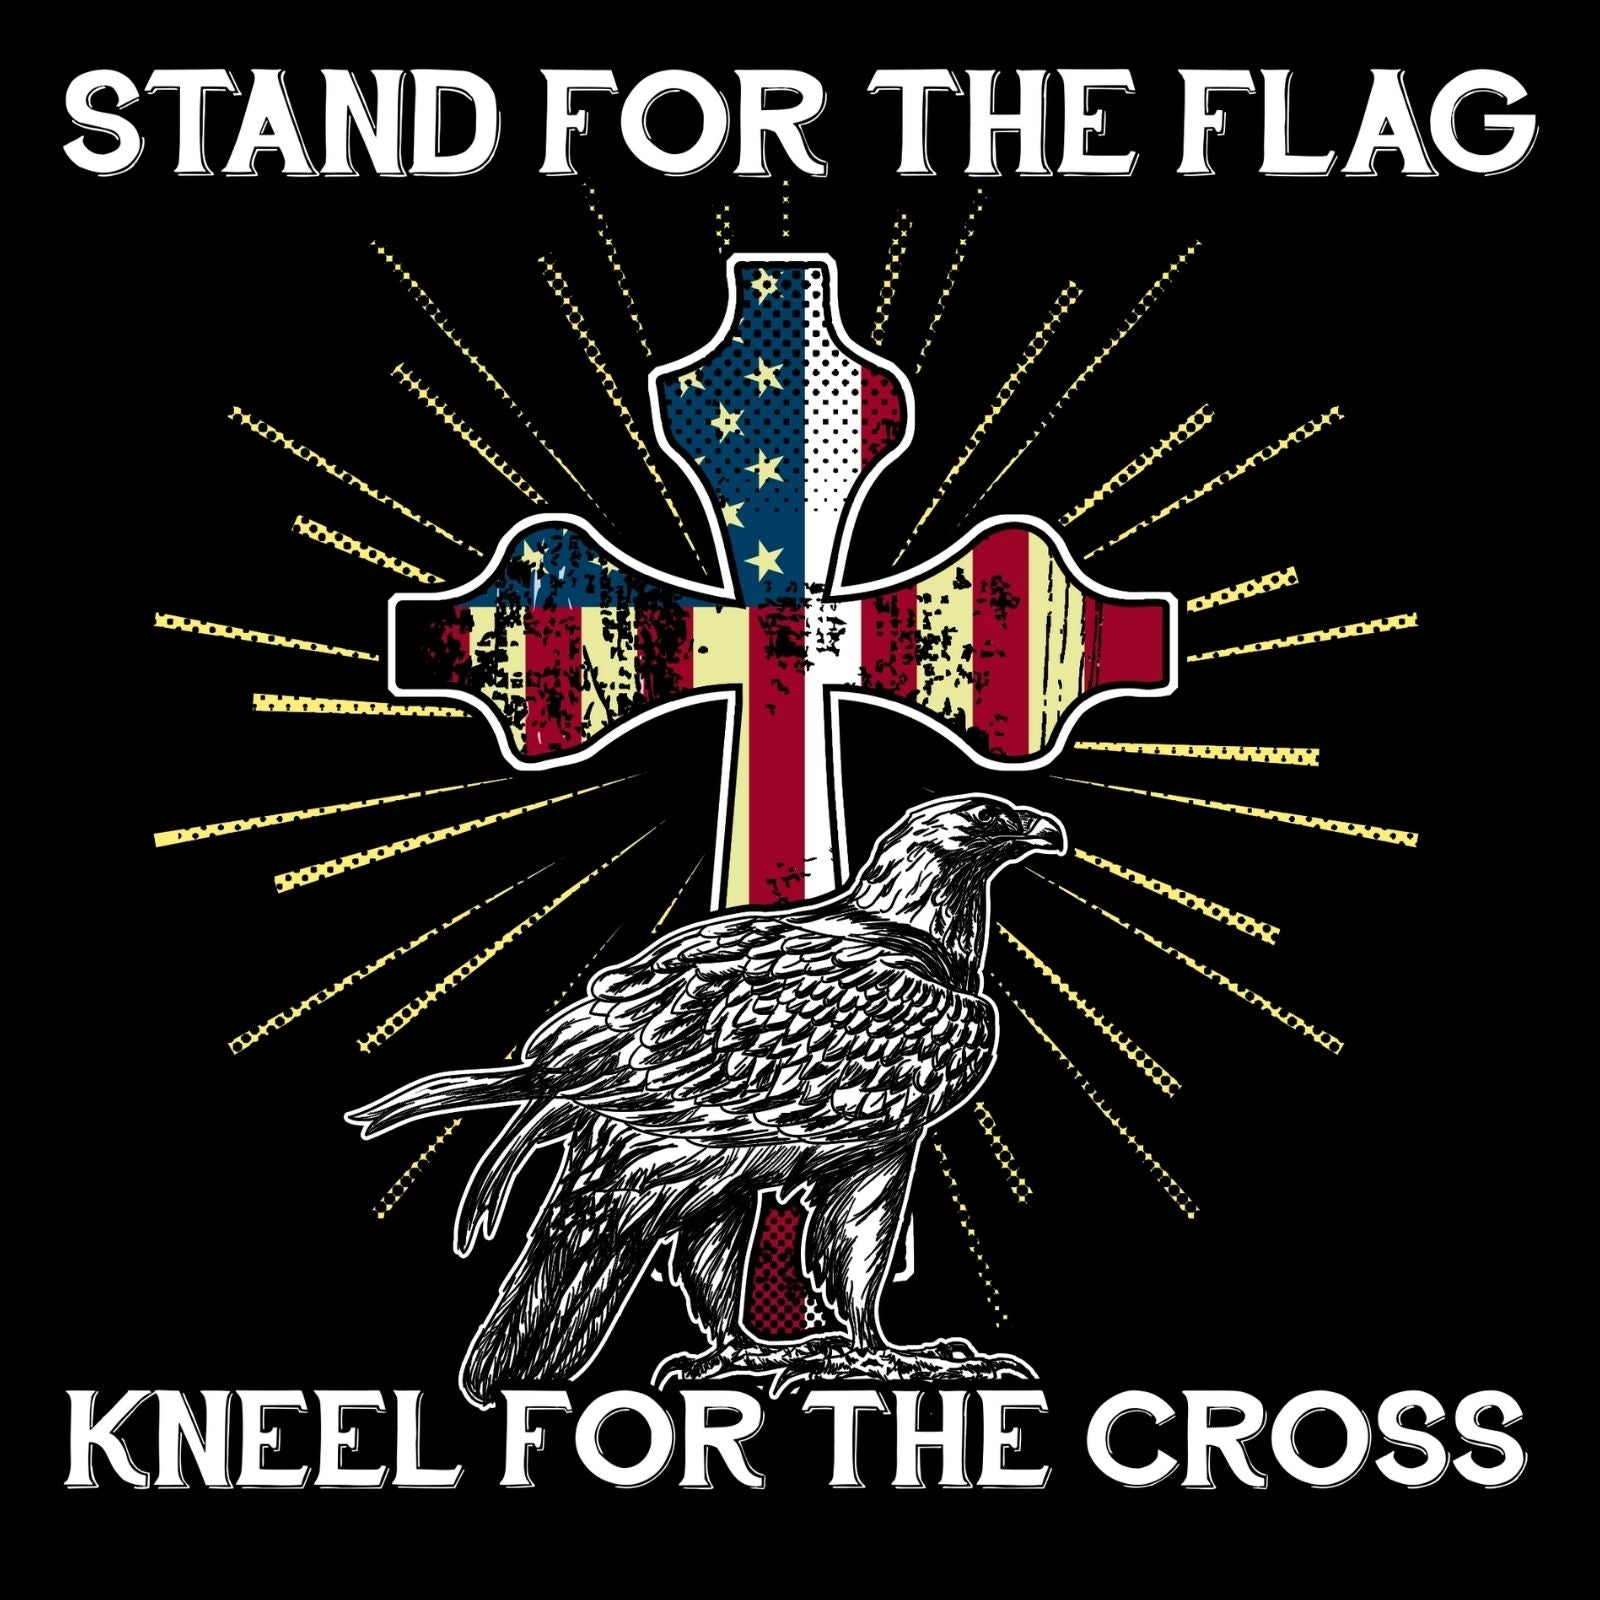 Stand For The Flag Kneel For The Cross 2 - Bastard Graphics